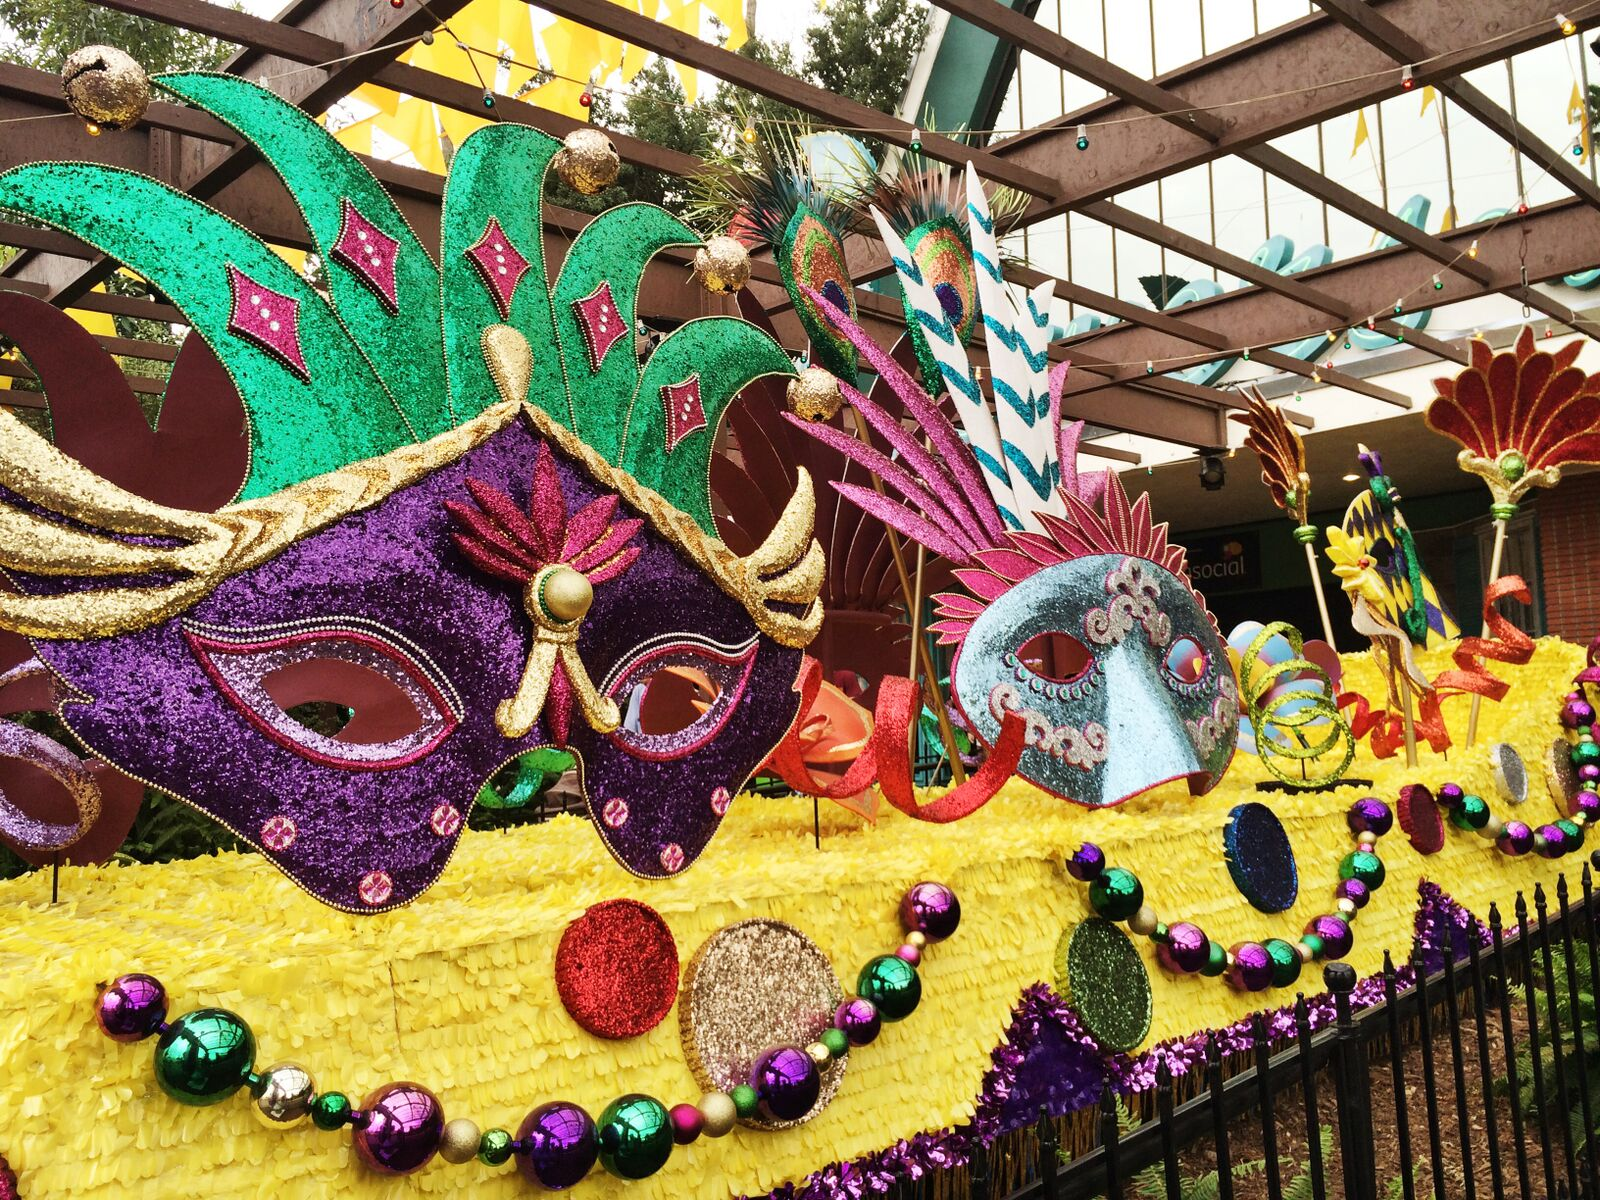 Mardi Gras is the celebration of the beginning of the Catholic Lenten season. Mardi Gras is French for